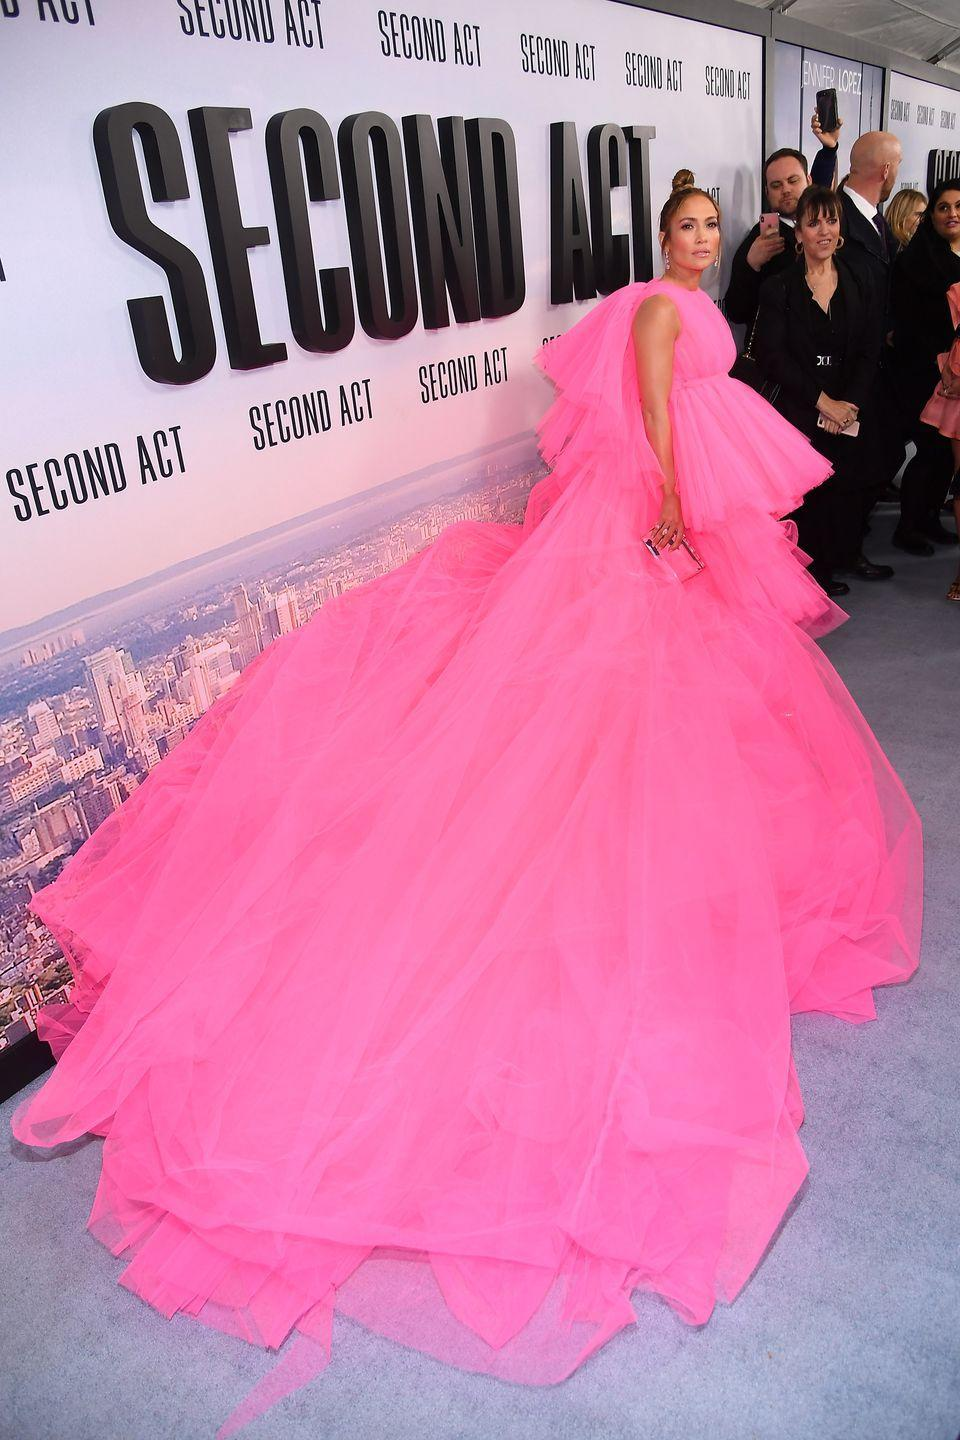 <p>Quite literally one of the biggest red-carpet moments of the year came courtesy of Jennifer Lopez, who attended the New York premiere of Second Act in this huge pink Giambattista Valli gown, which was from the designer's most recent couture collection. The dress immediately blew up on social media thanks to its dramatic volume and neon hue. In fact, the gown was so large that she had to be transported to the venue in a private van. </p>